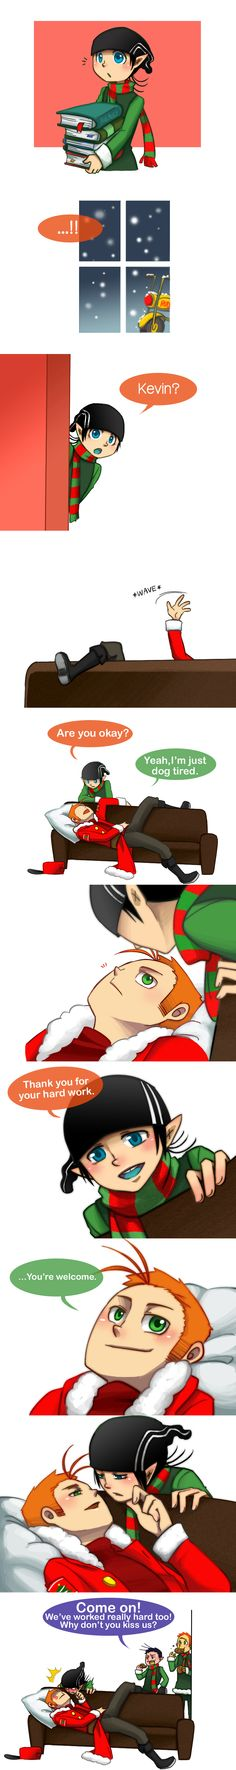 KevEdd_After Xmas by aulauly7 on DeviantArt